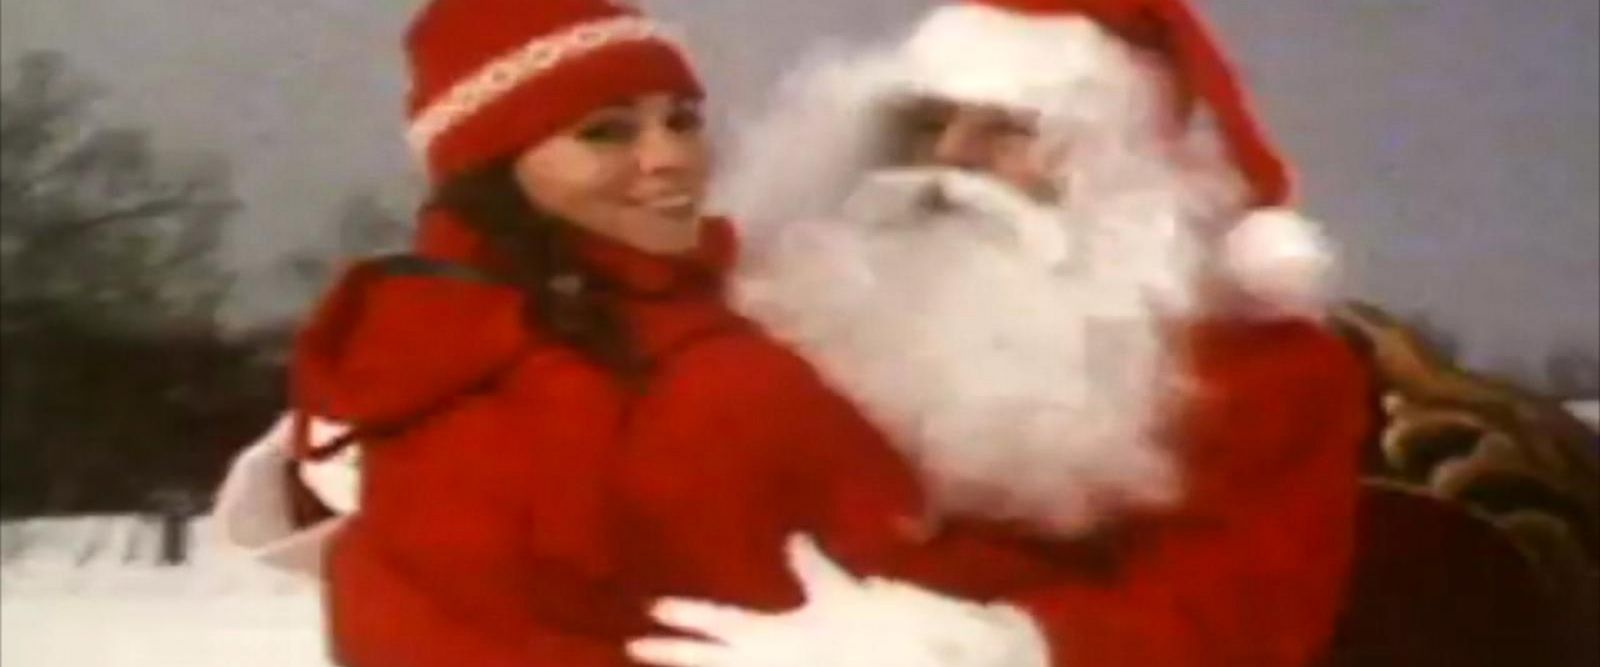 VIDEO: Mariah Carey's classic holiday song 'All I Want for Christmas is You' is back on top